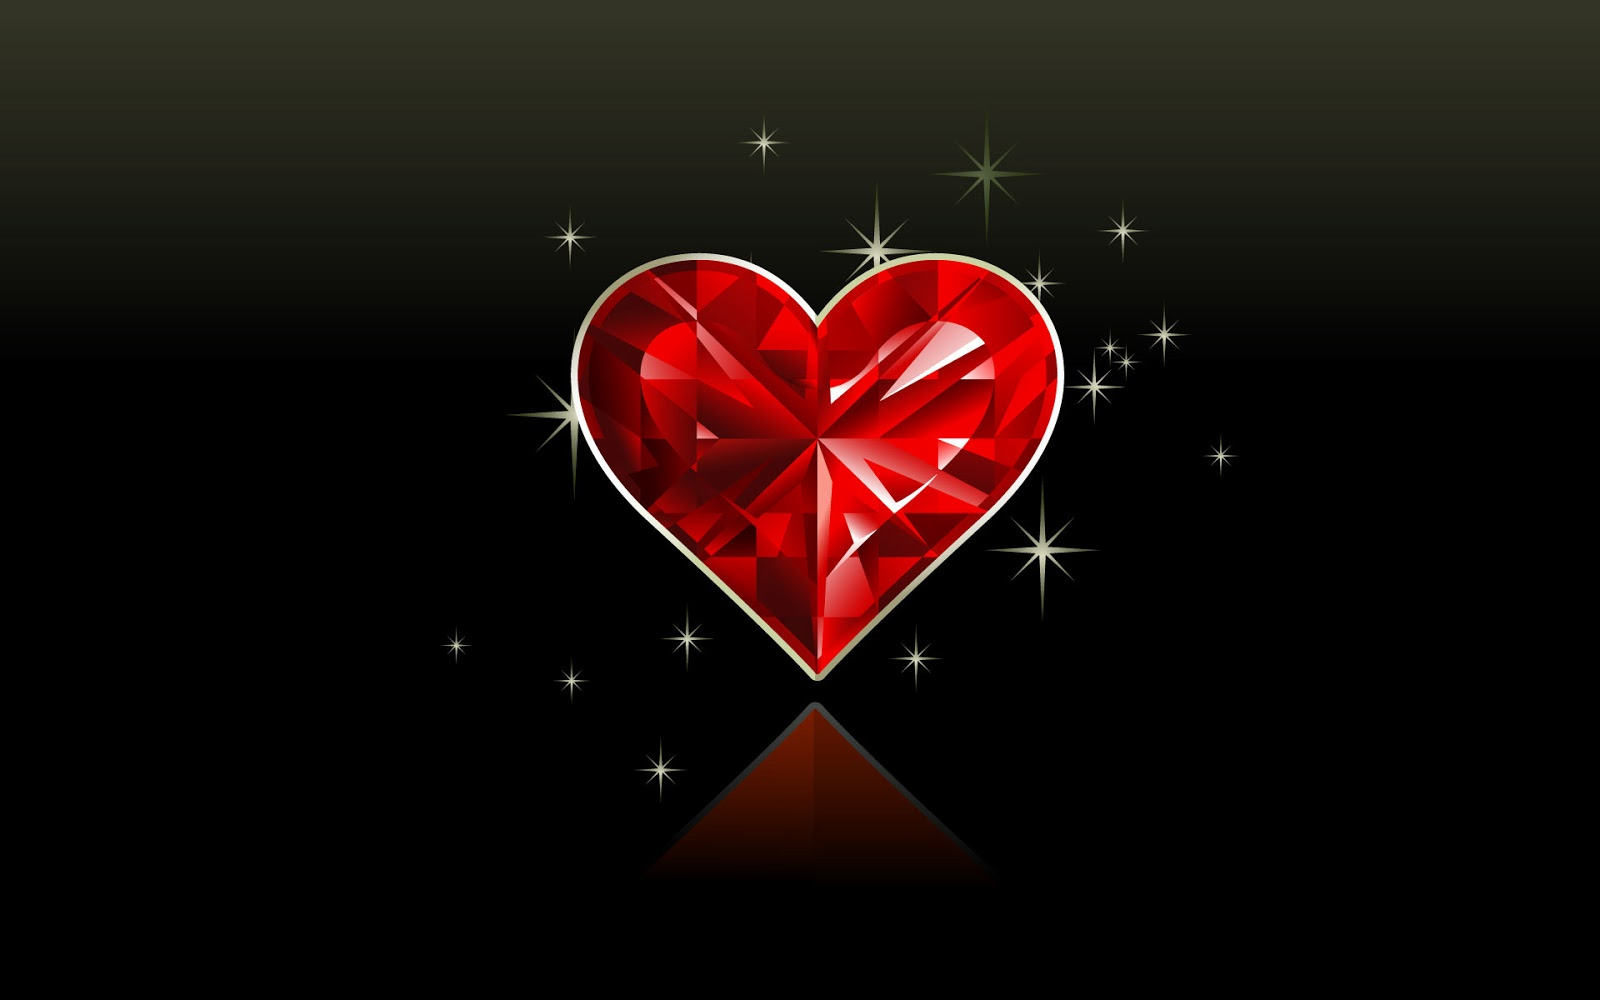 Love Wallpapers Blogspot : Heart love background, wallpaper hearts love Free Stock ...